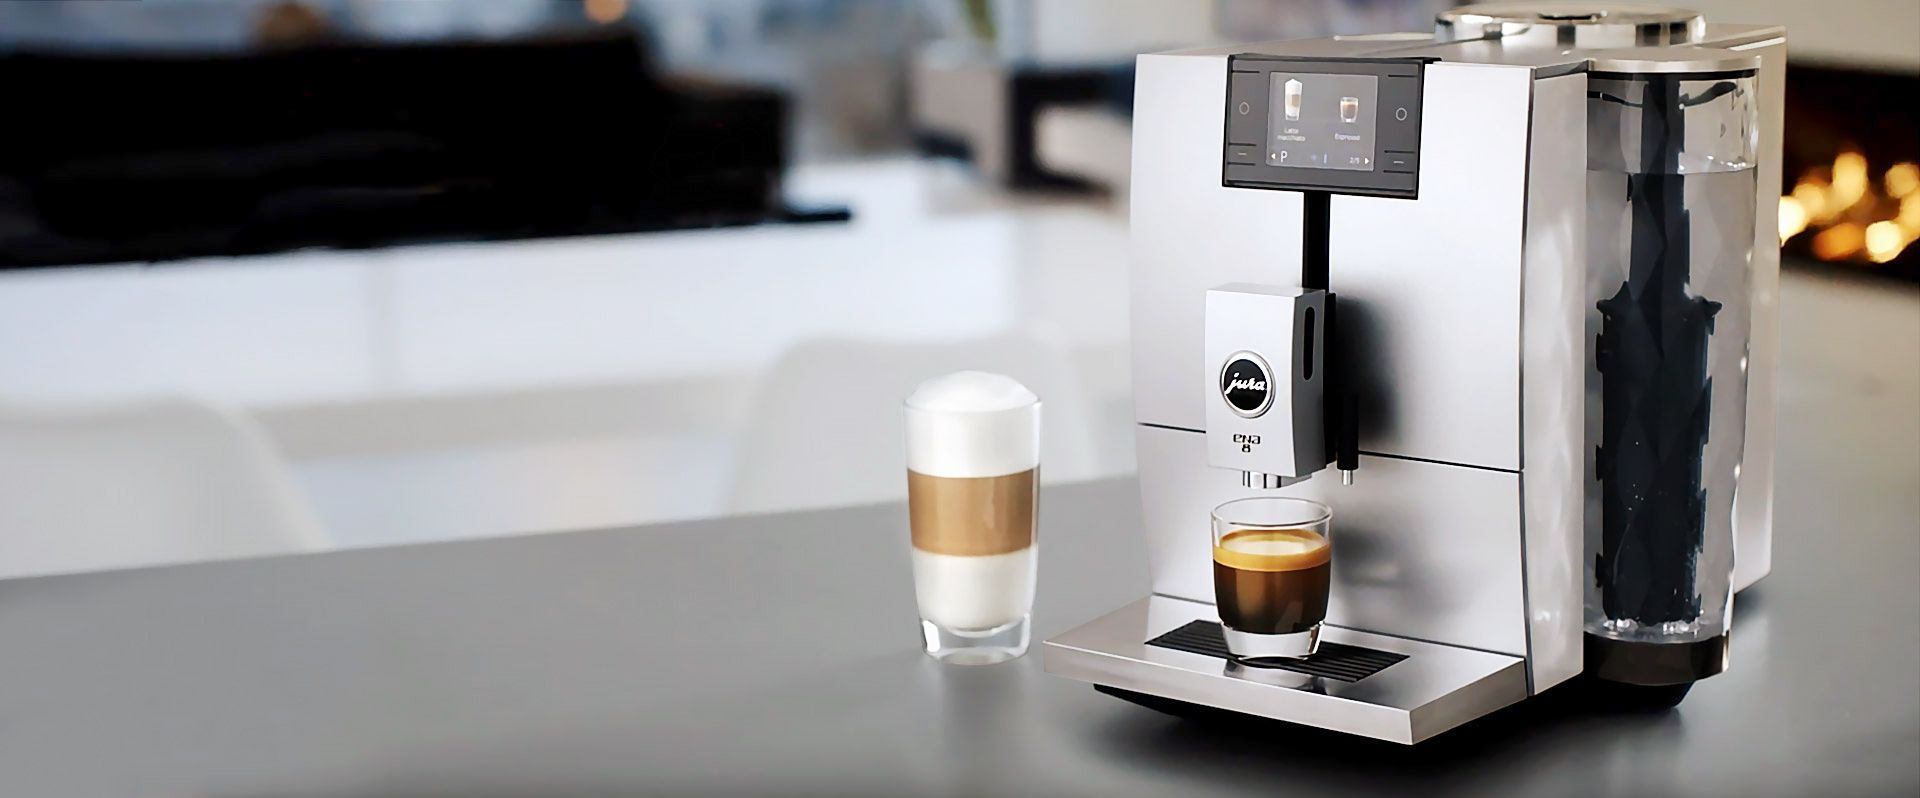 Welcome to the online shop for JURA coffee machines - outstanding Swiss quality automatic coffee machines. #juracoffeemachine Welcome to the online shop for JURA coffee machines - outstanding Swiss quality automatic coffee machines. #automaticcoffeemachine